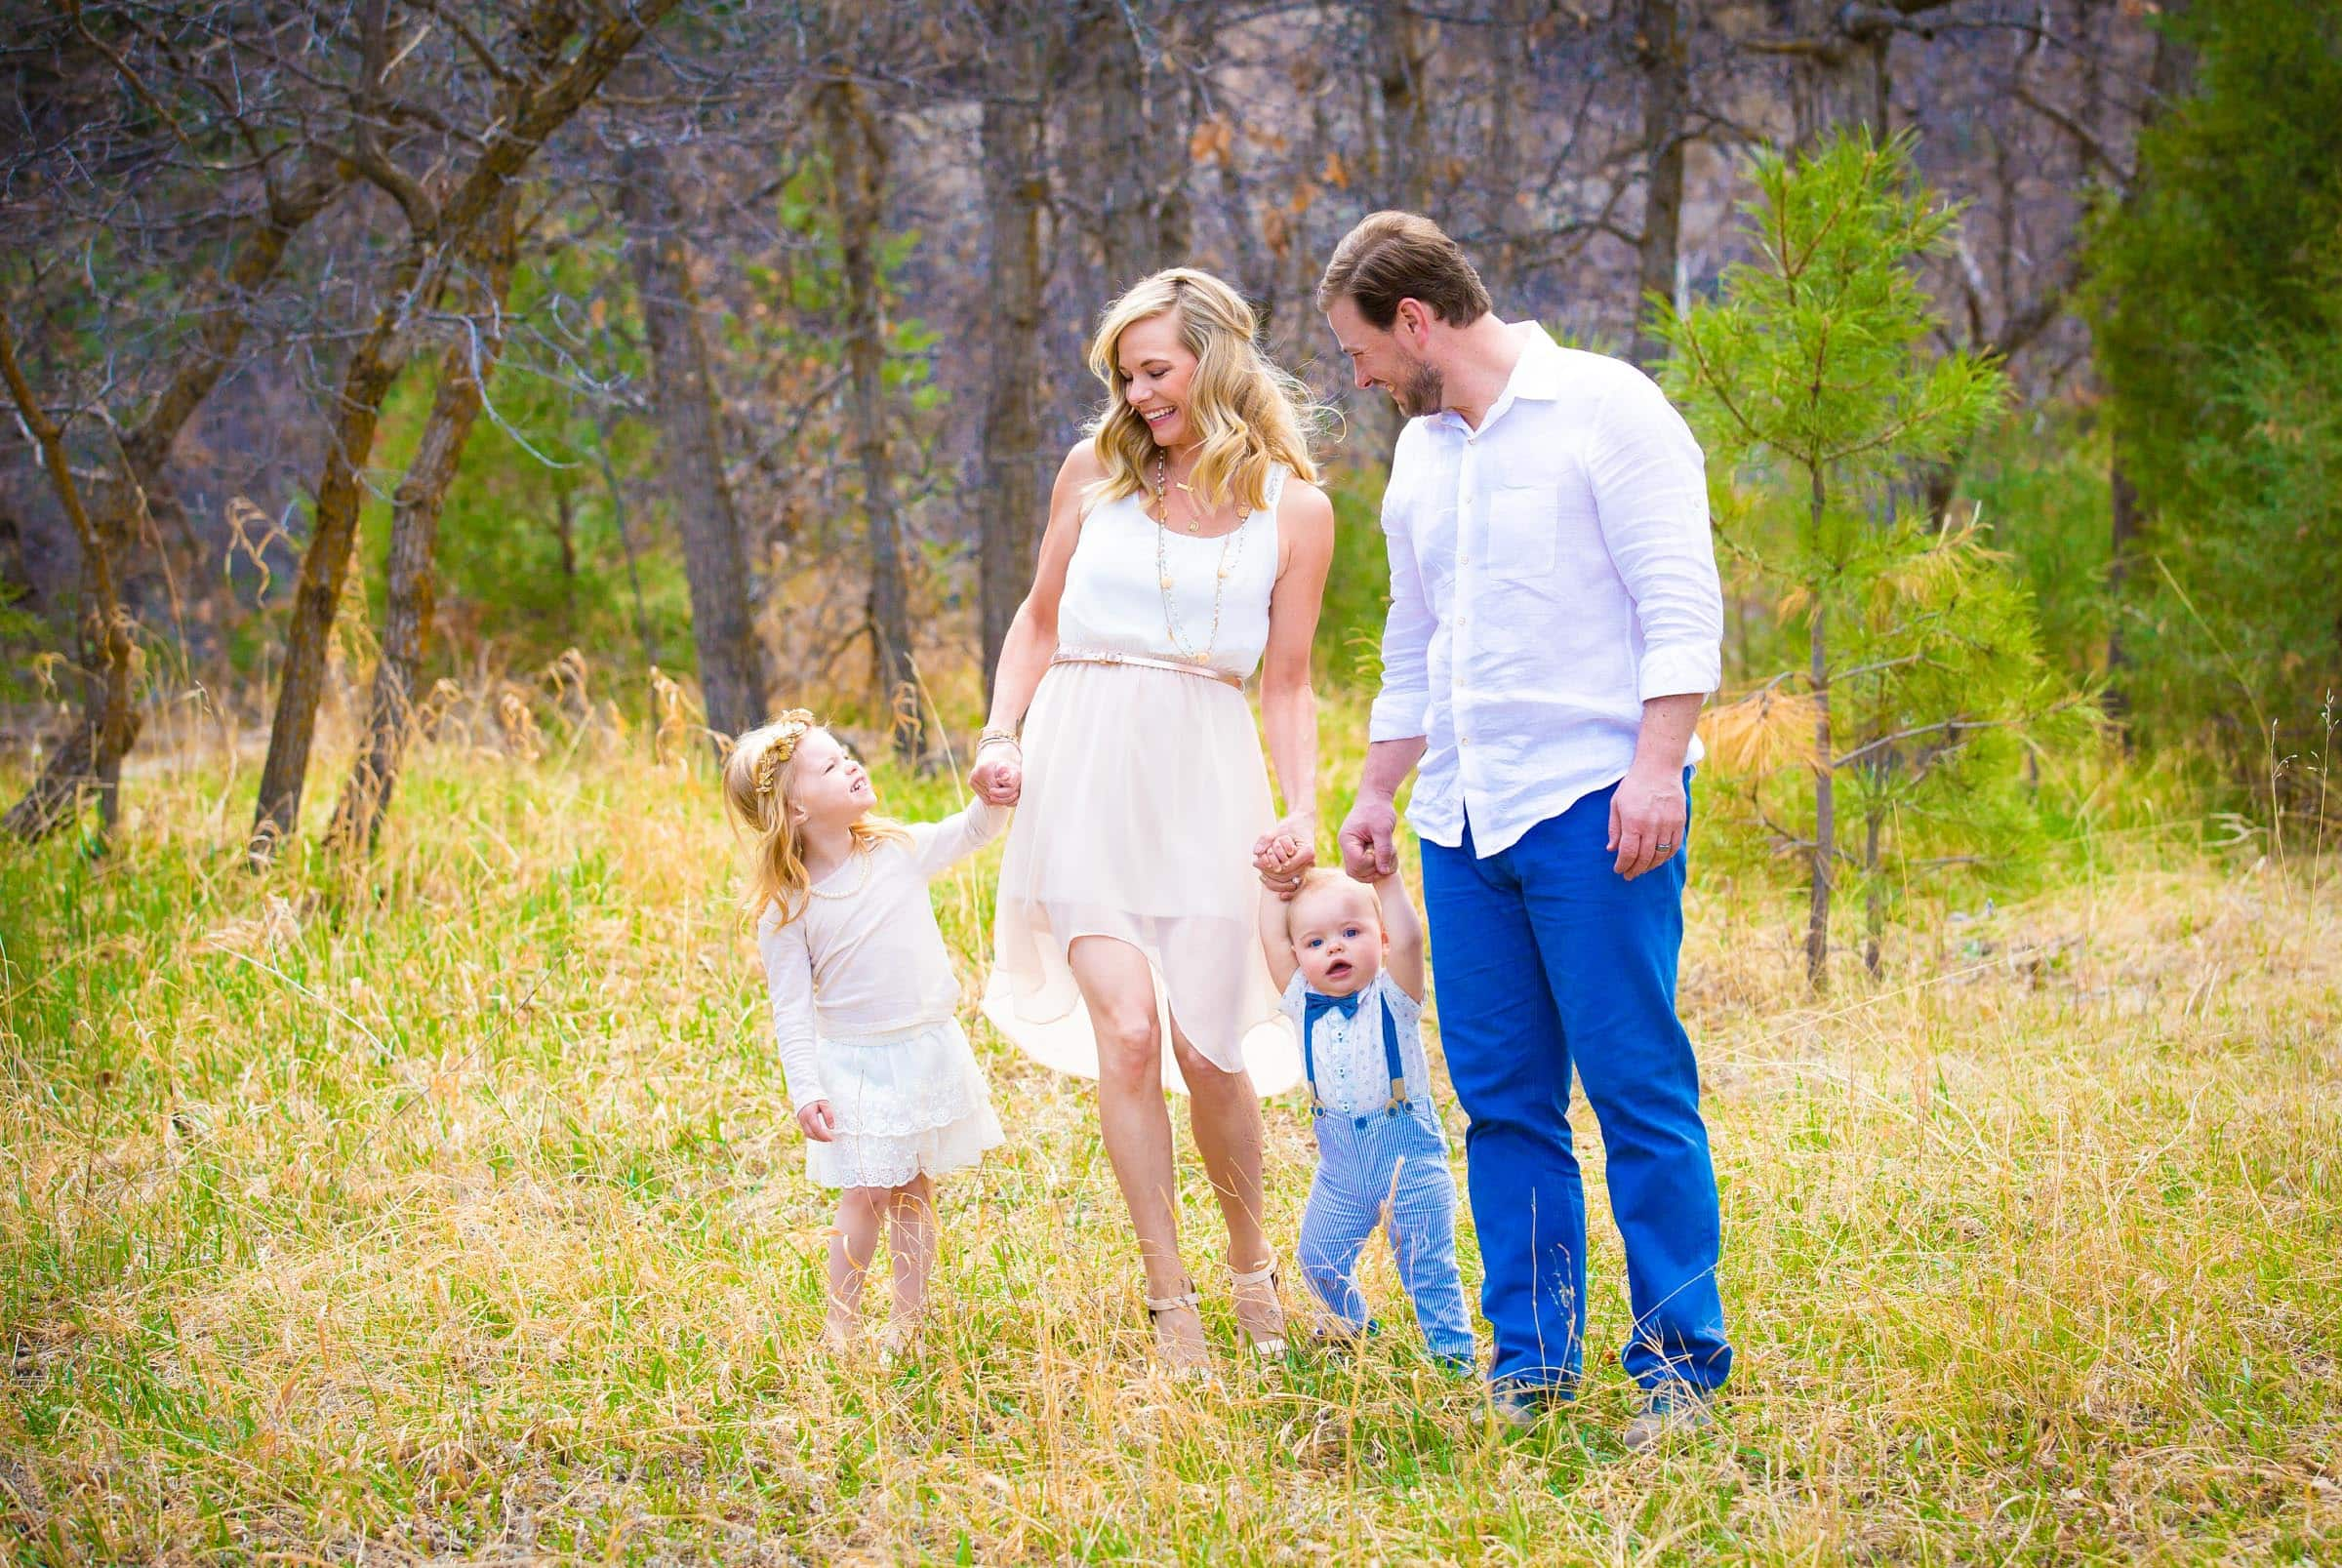 Utah Photography Sessions are coming! – Utah Family Photographer